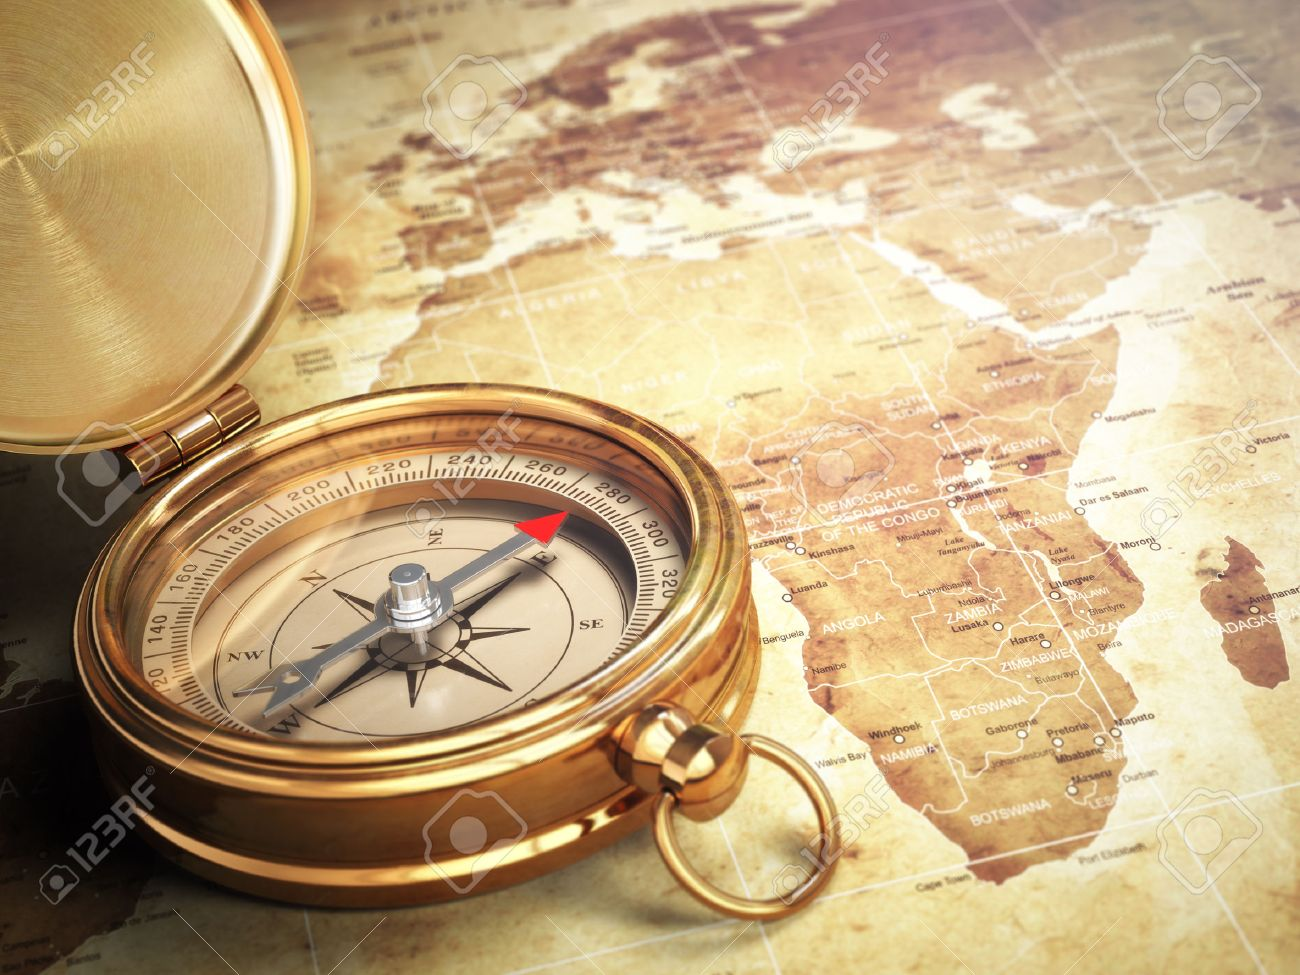 Vintage Compass On The Old World Map With DOF Effect Travel - Old world map